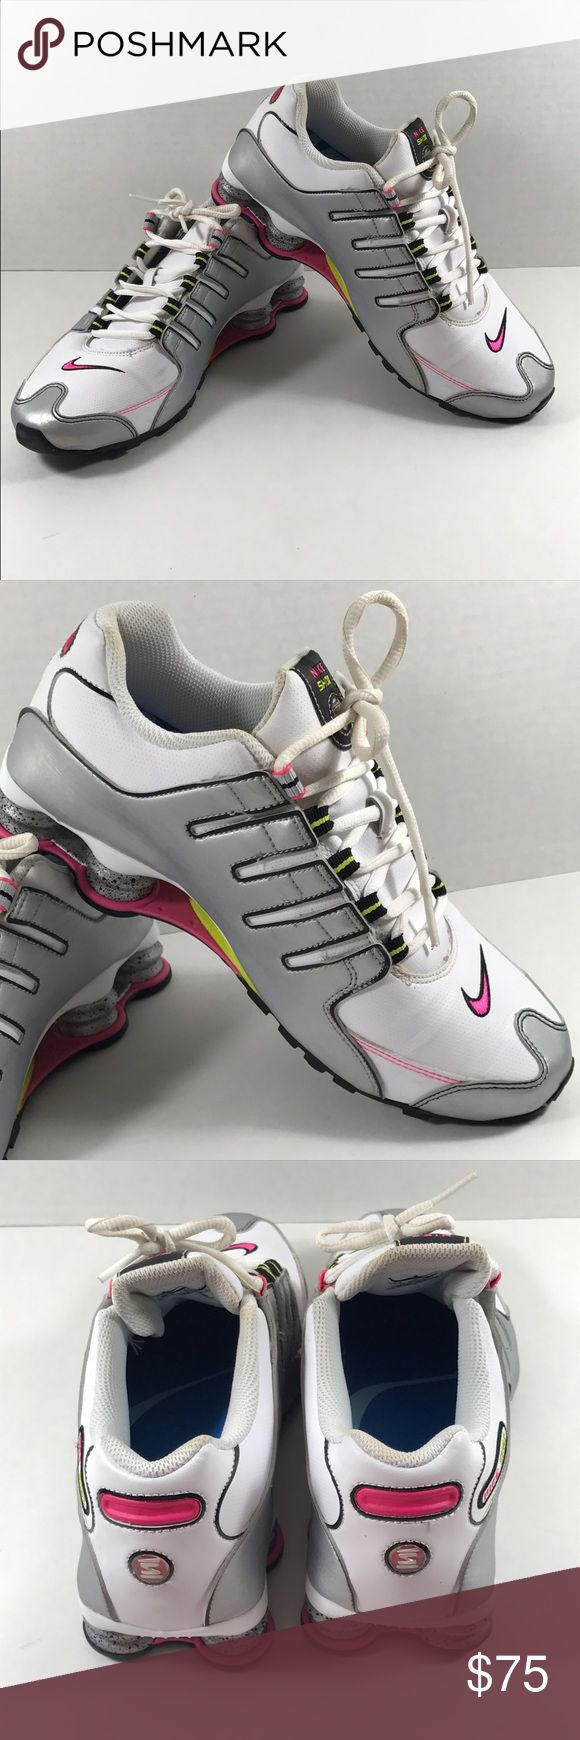 Nike Shoz NZ Running Shoes 9.5 Women's Nike shox - white, silver, pink & green sneakers. Size 9.5. Incredibly minimal wear - never worn outside of the house. Nike Shoes Sneakers